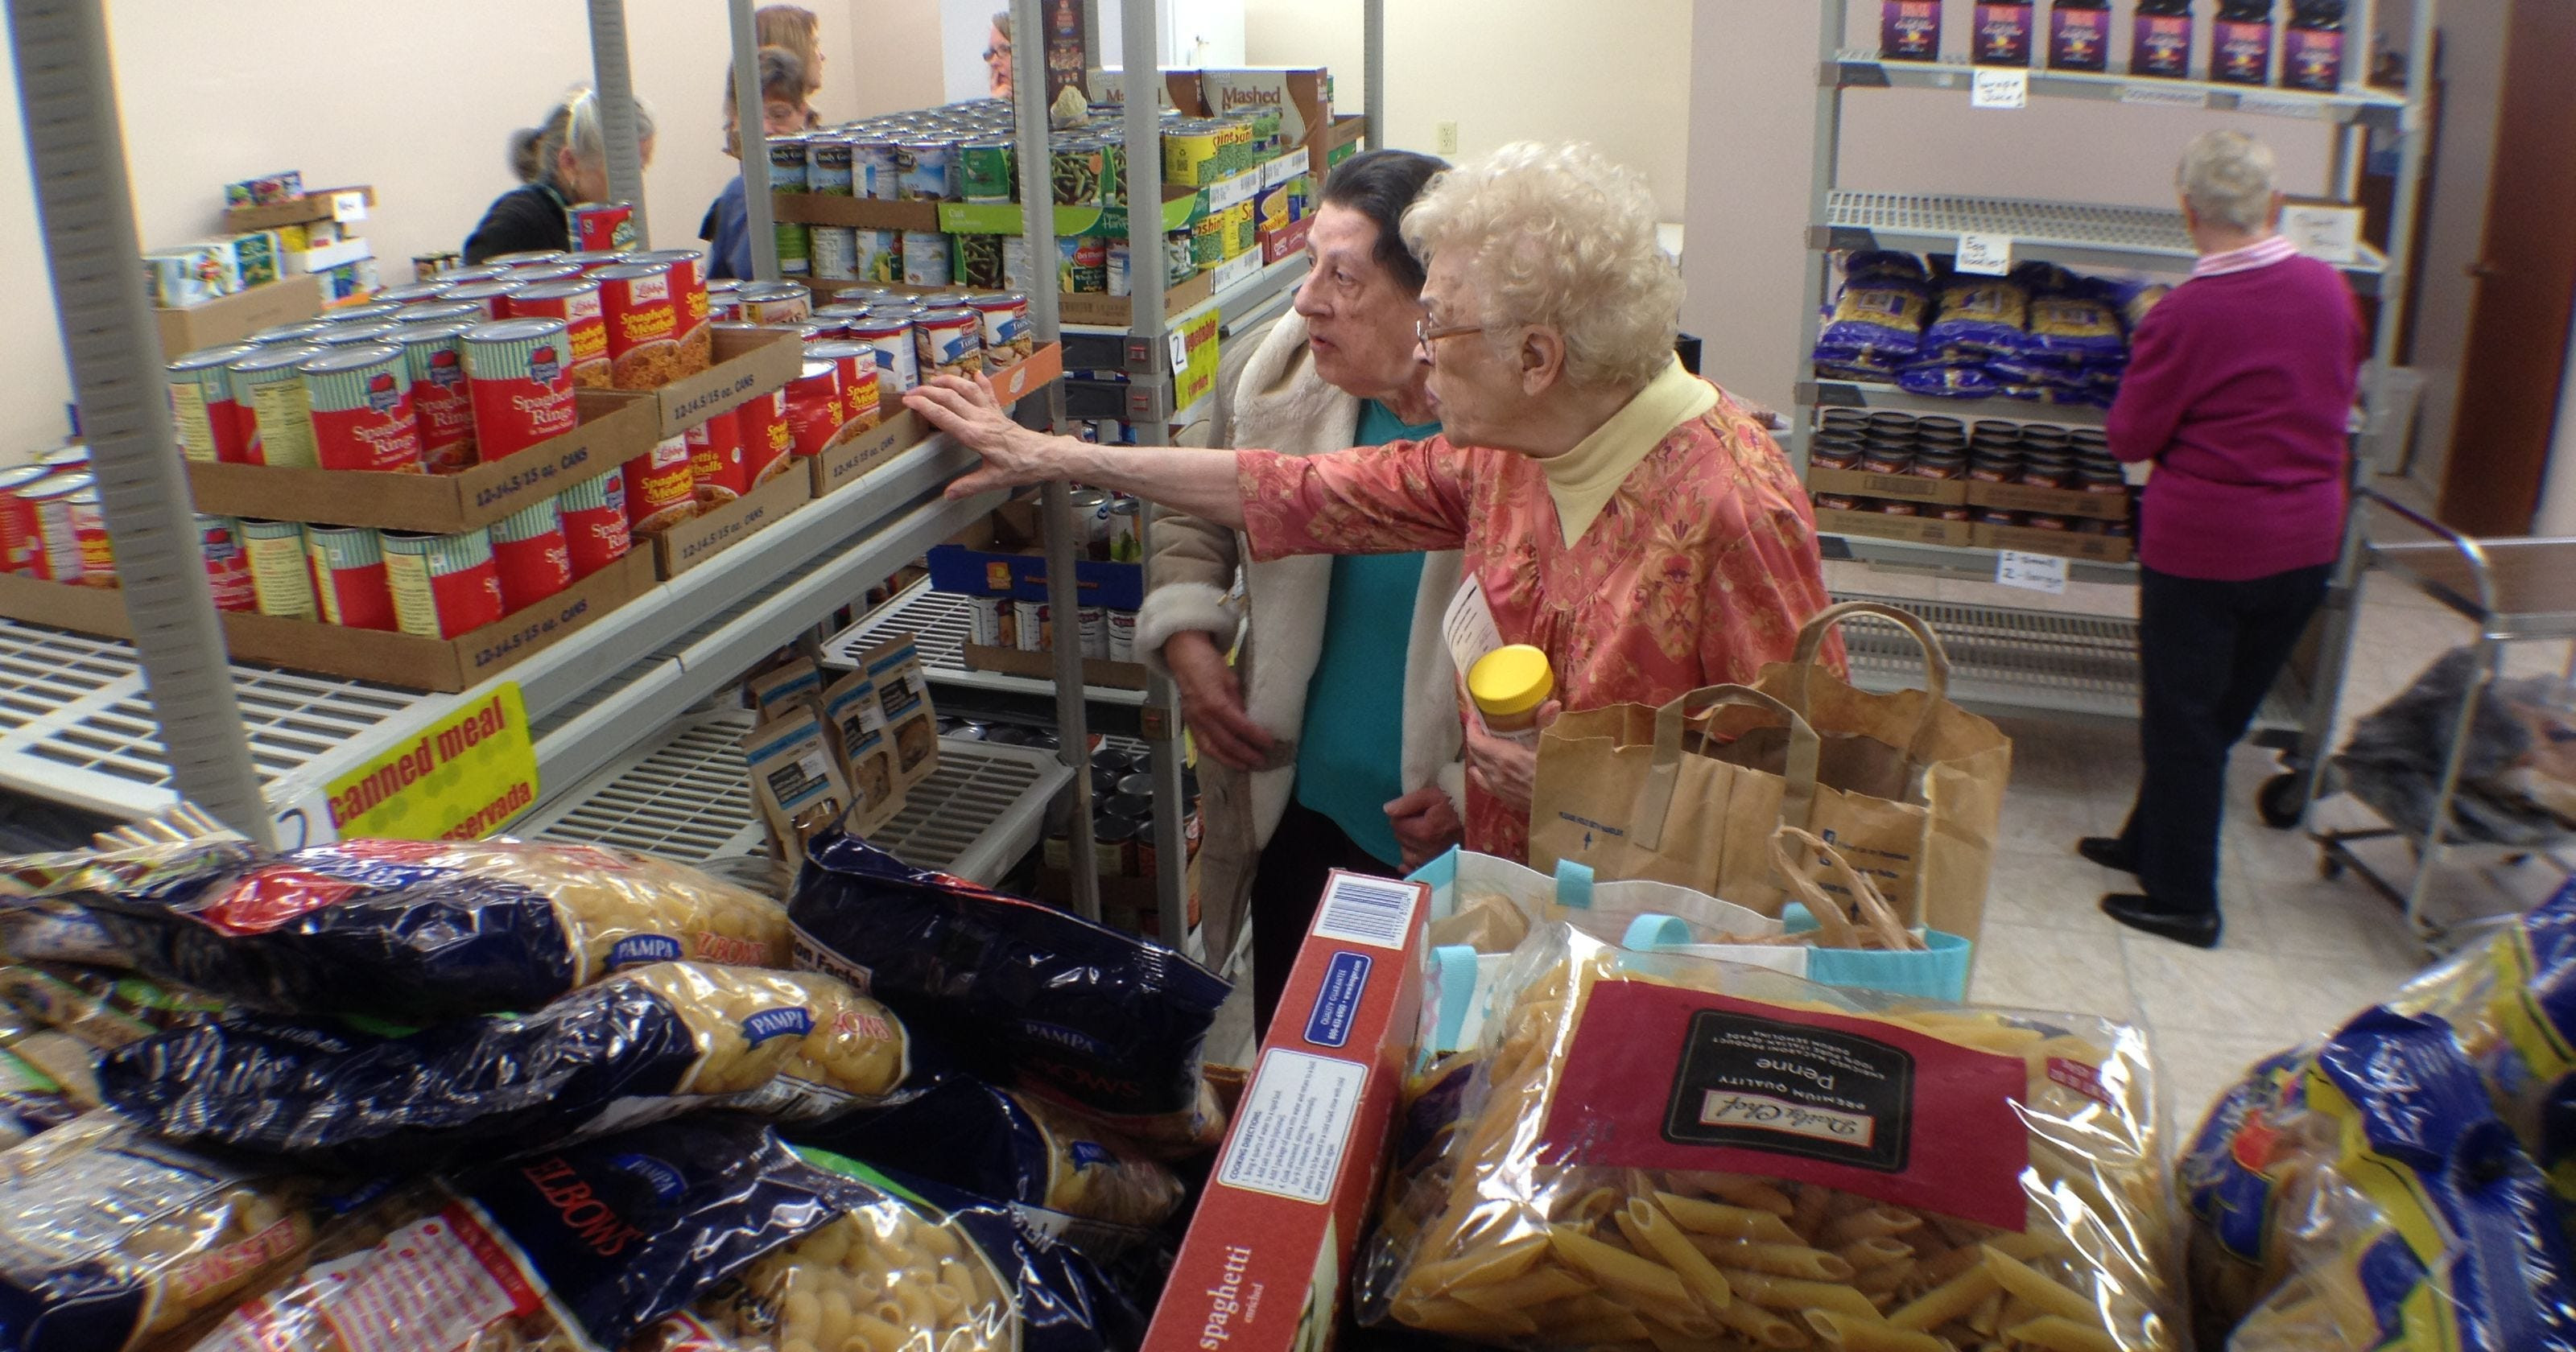 Best ideas about Food Pantry Open Today . Save or Pin Food pantry opens in new location Now.